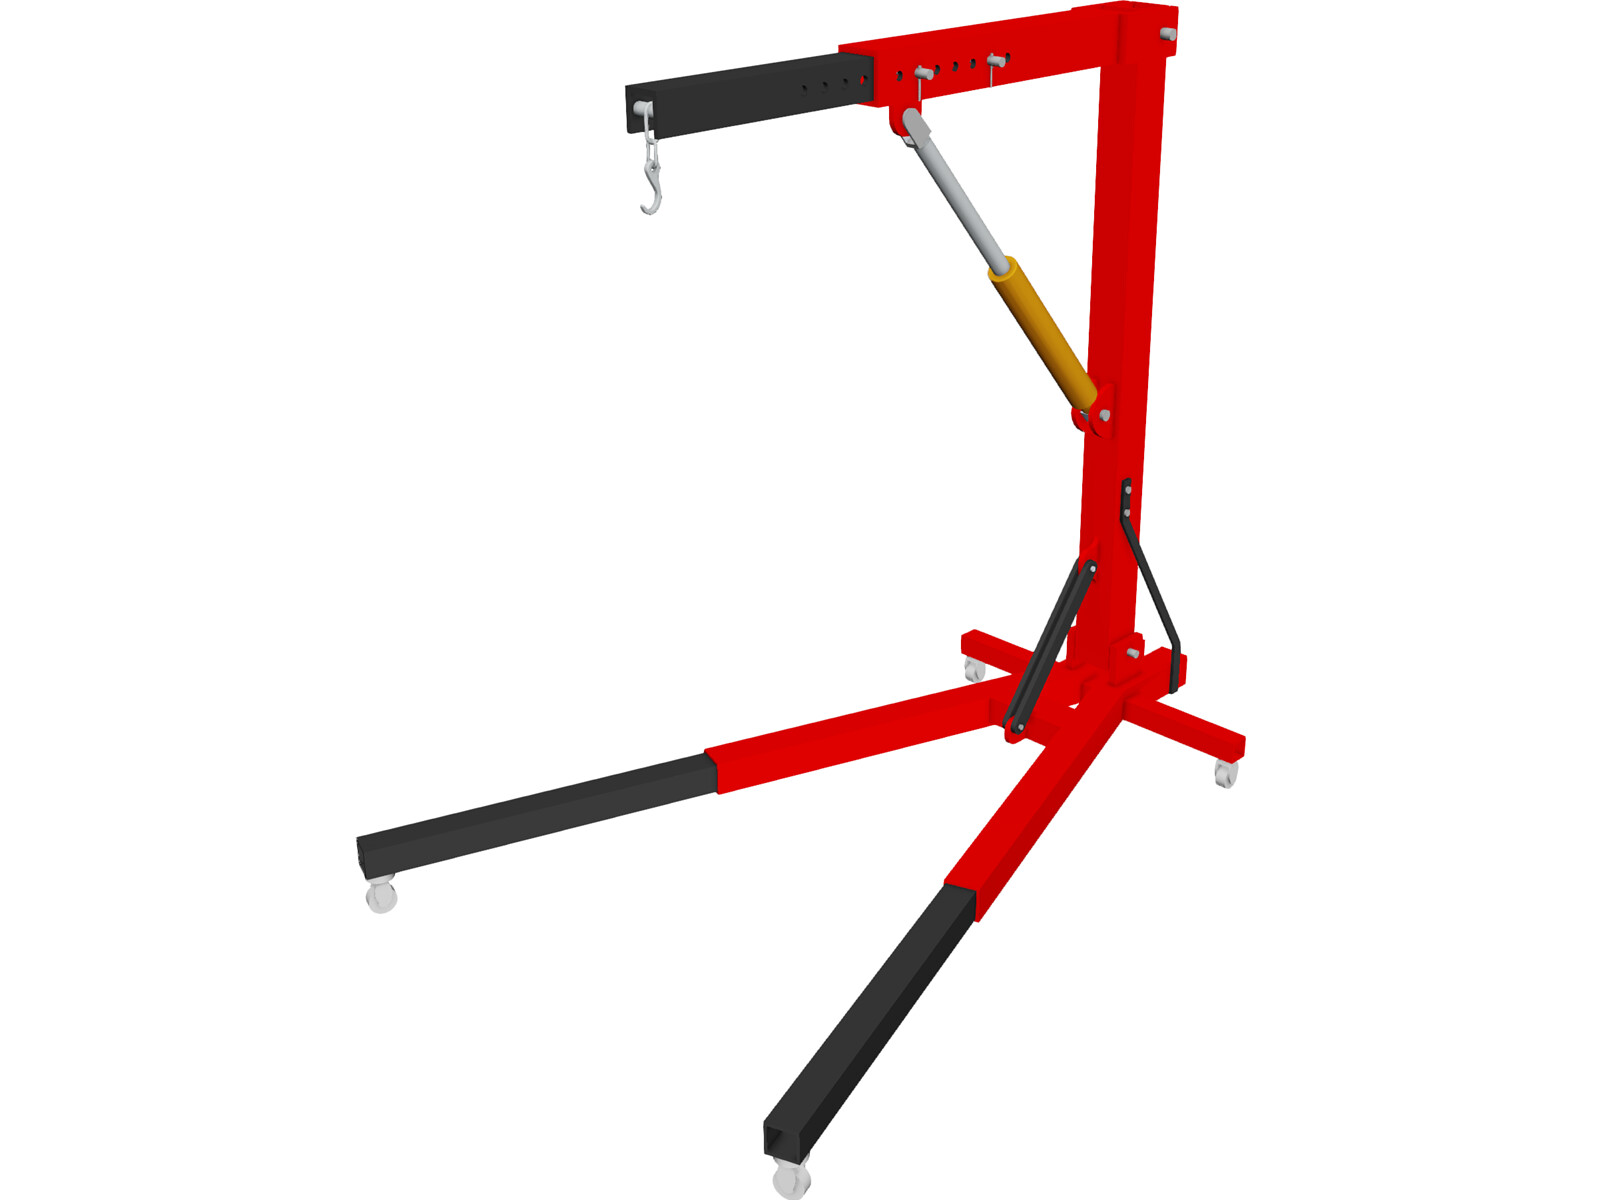 Engine Workshop Crane 3D Model